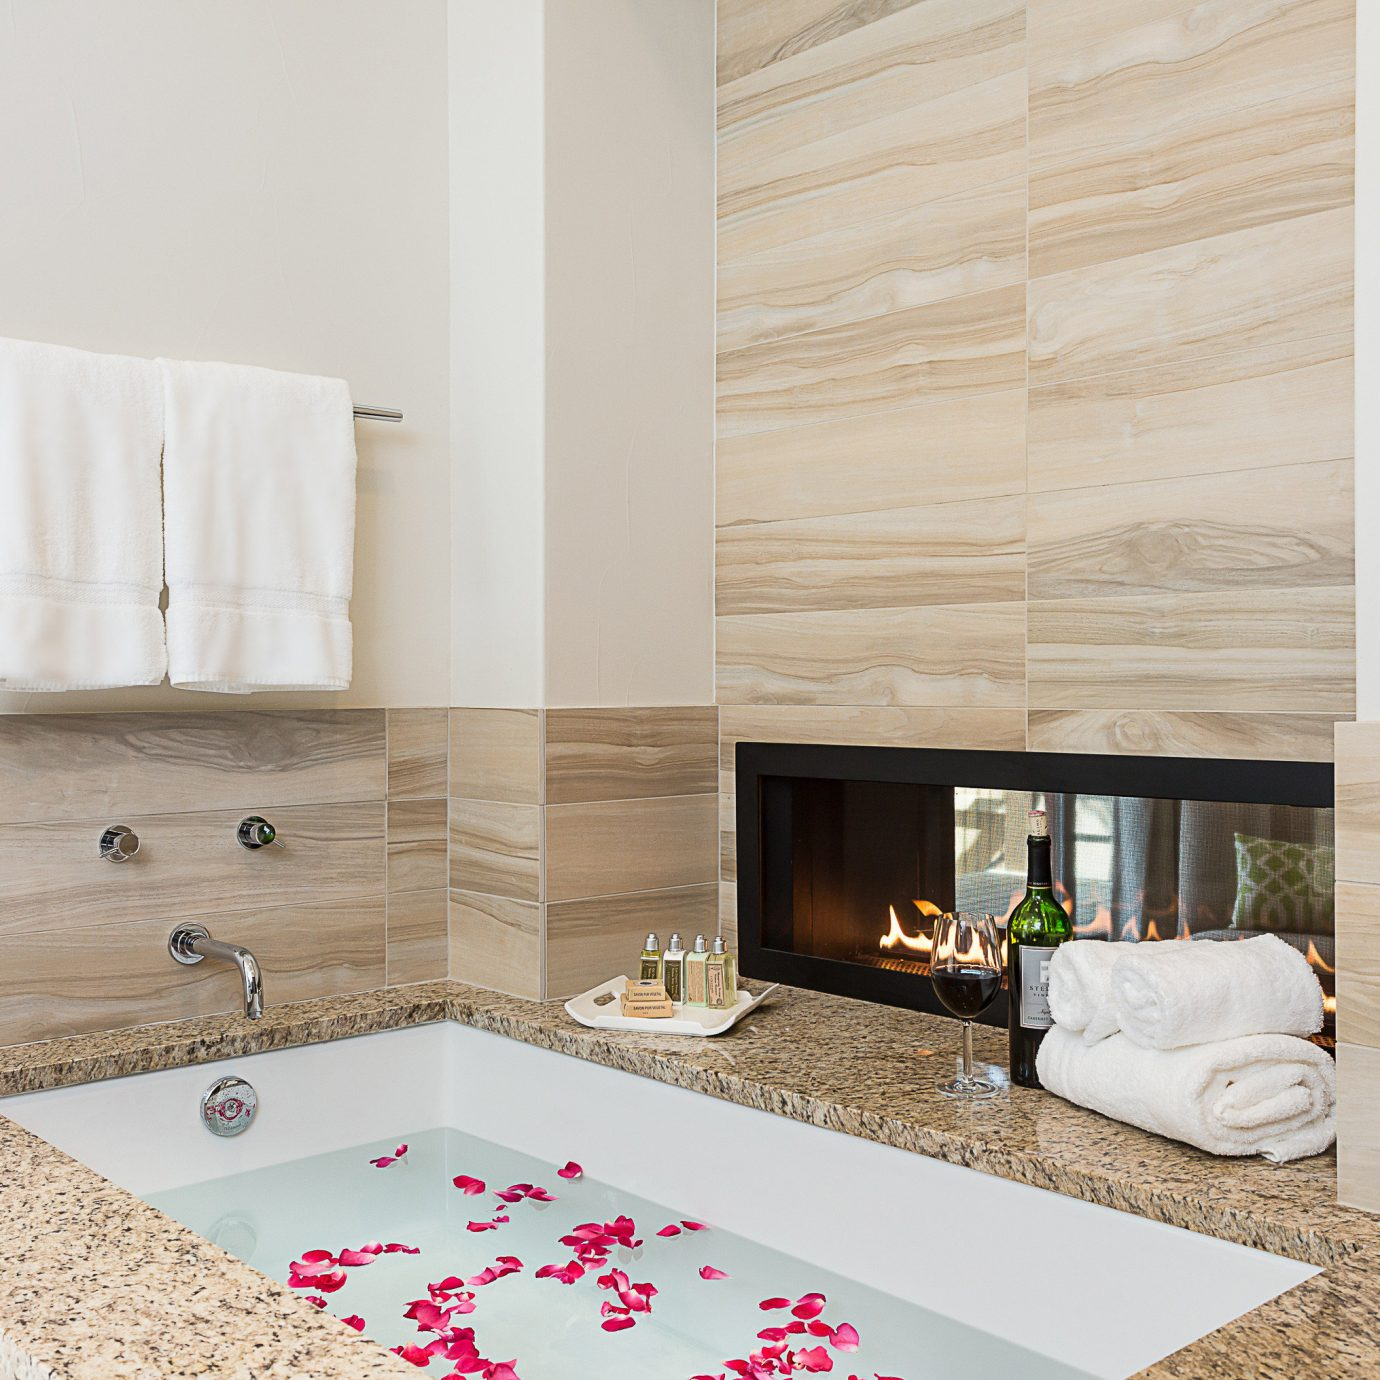 Bath Country Luxury flooring bathroom bathtub tile wood flooring laminate flooring plumbing fixture